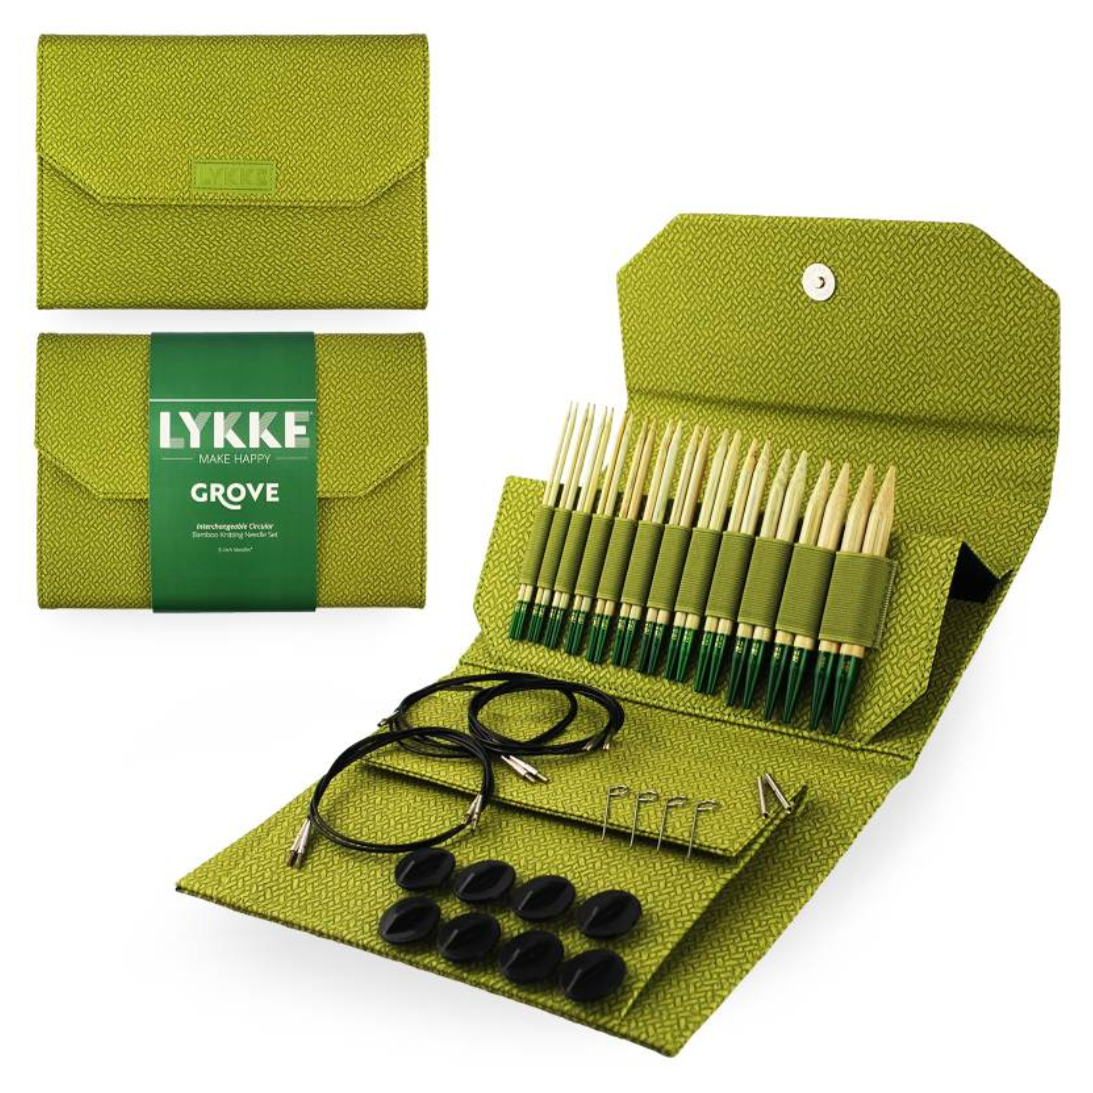 "Lykke Grove 5"" Interchangeable Needles Set"